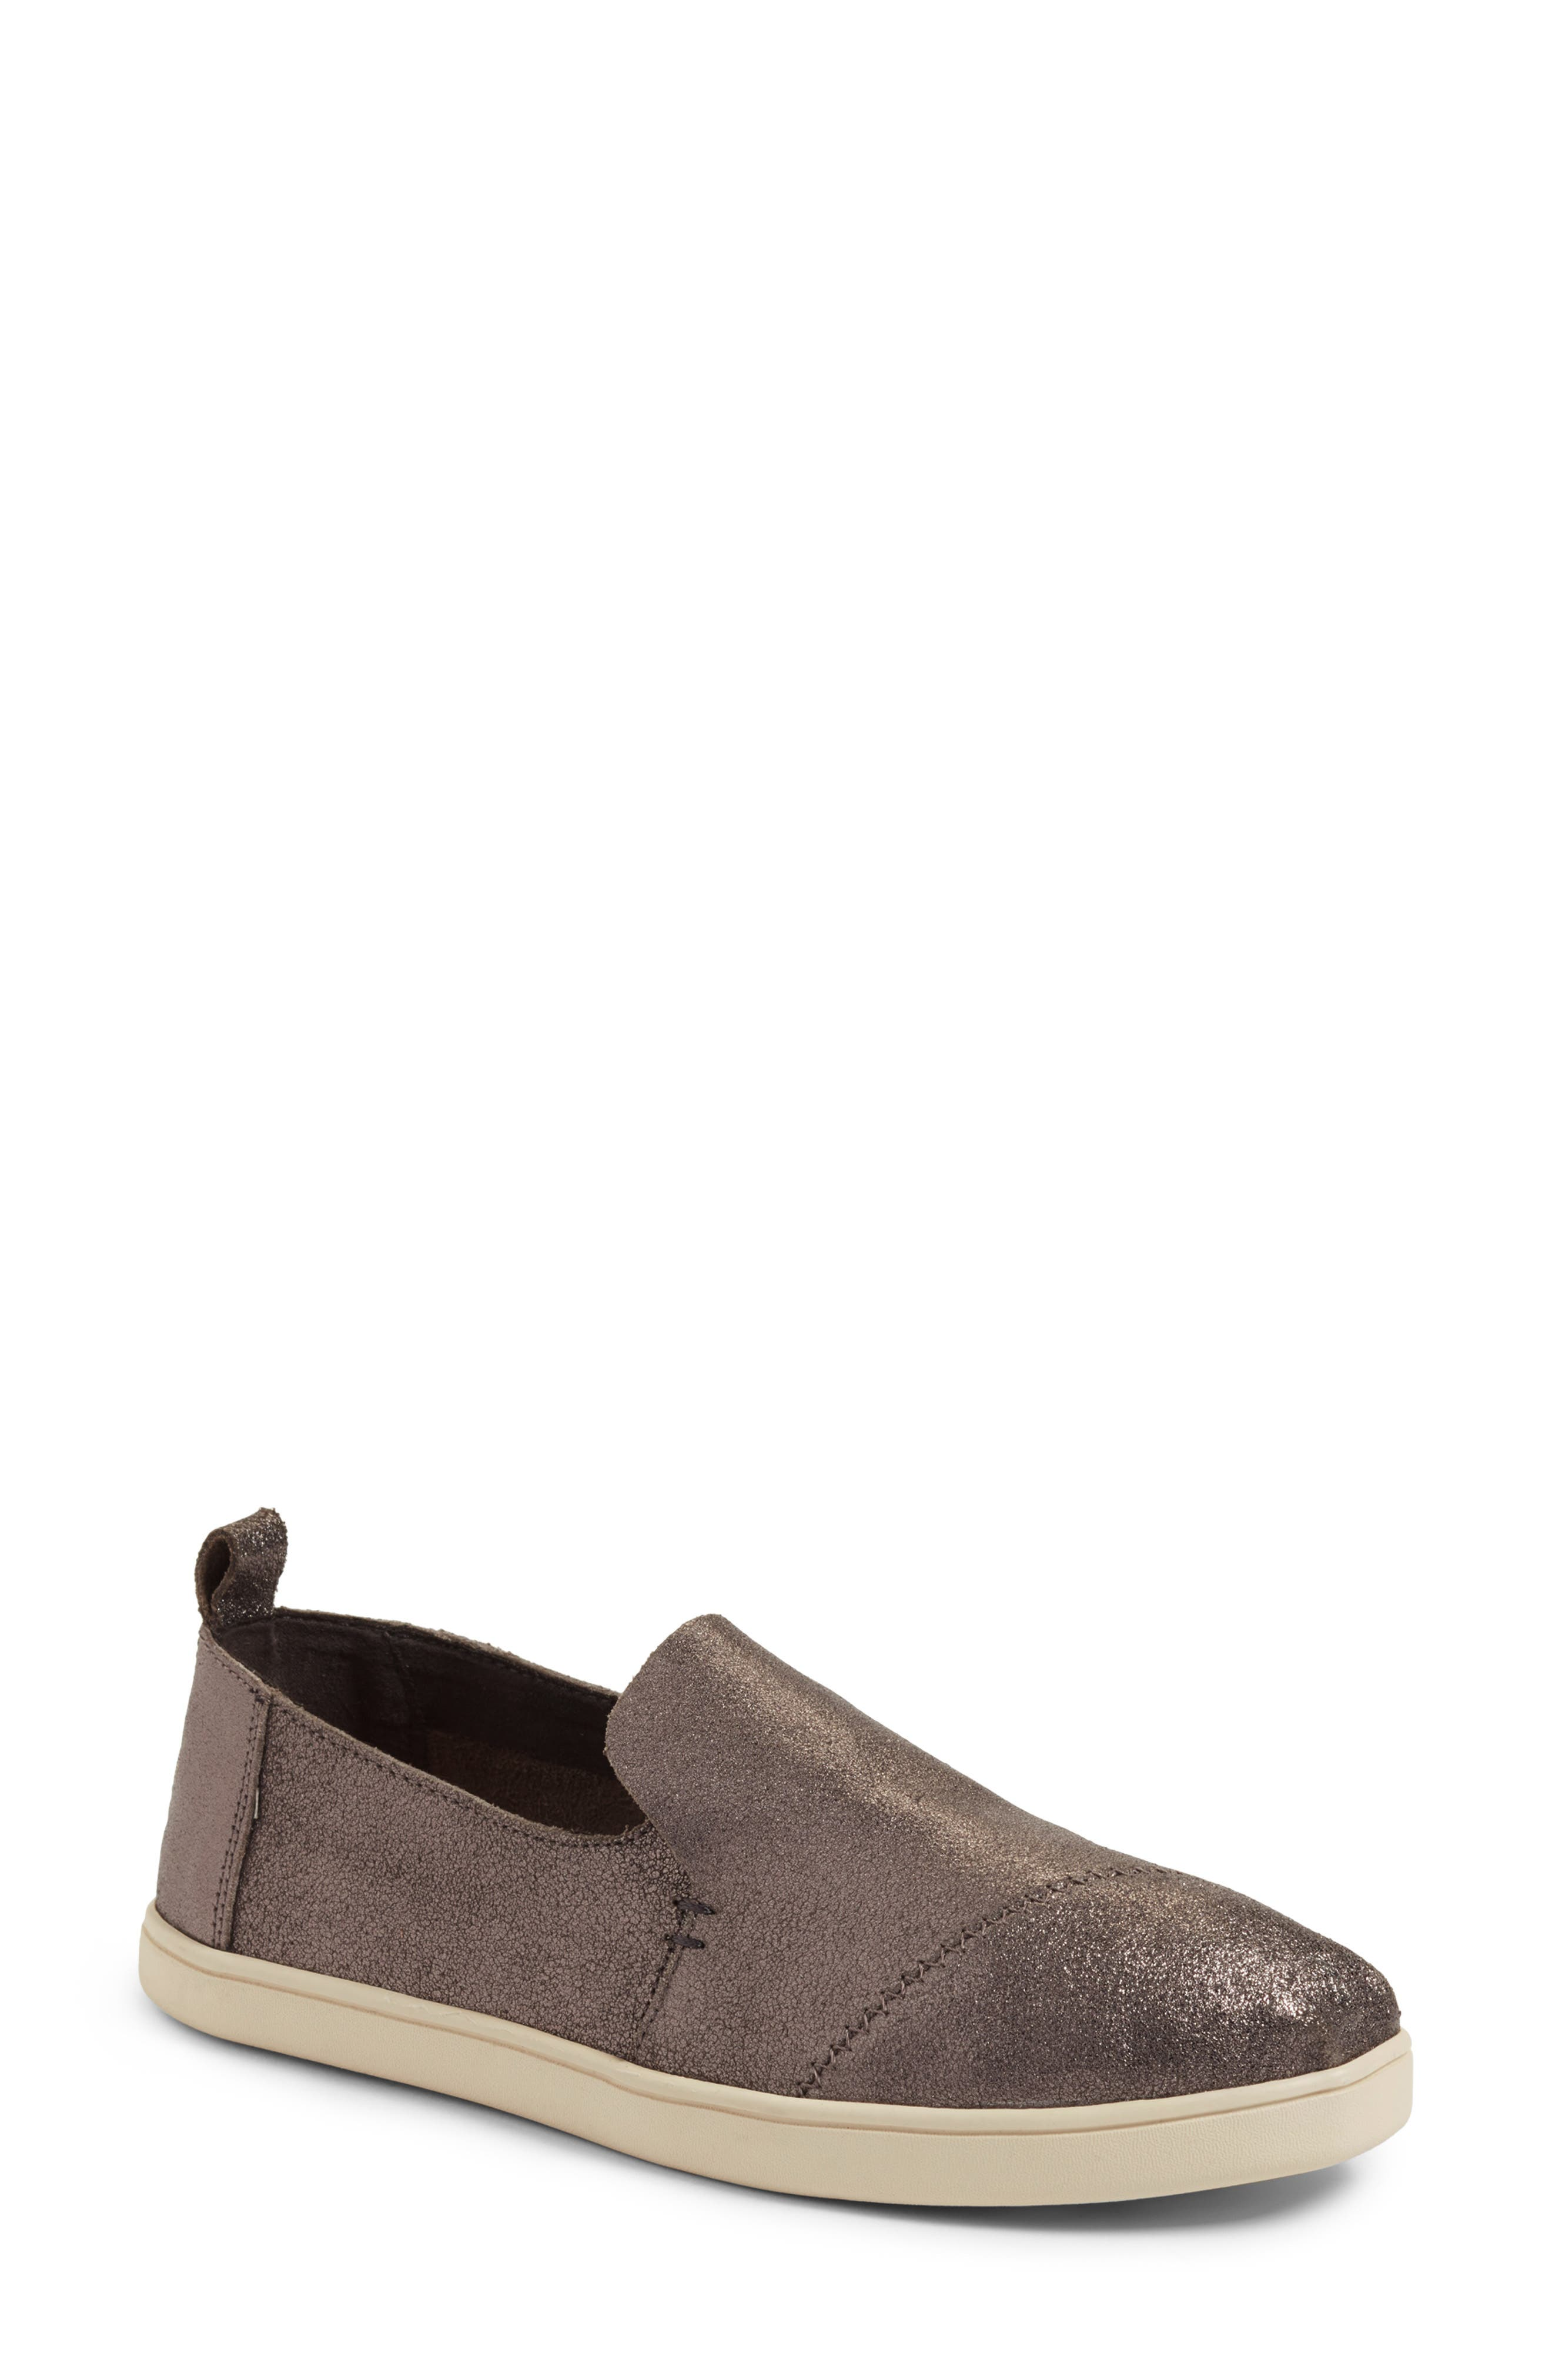 Deconstructed Alpargata Slip-On,                             Main thumbnail 1, color,                             Pewter Leather